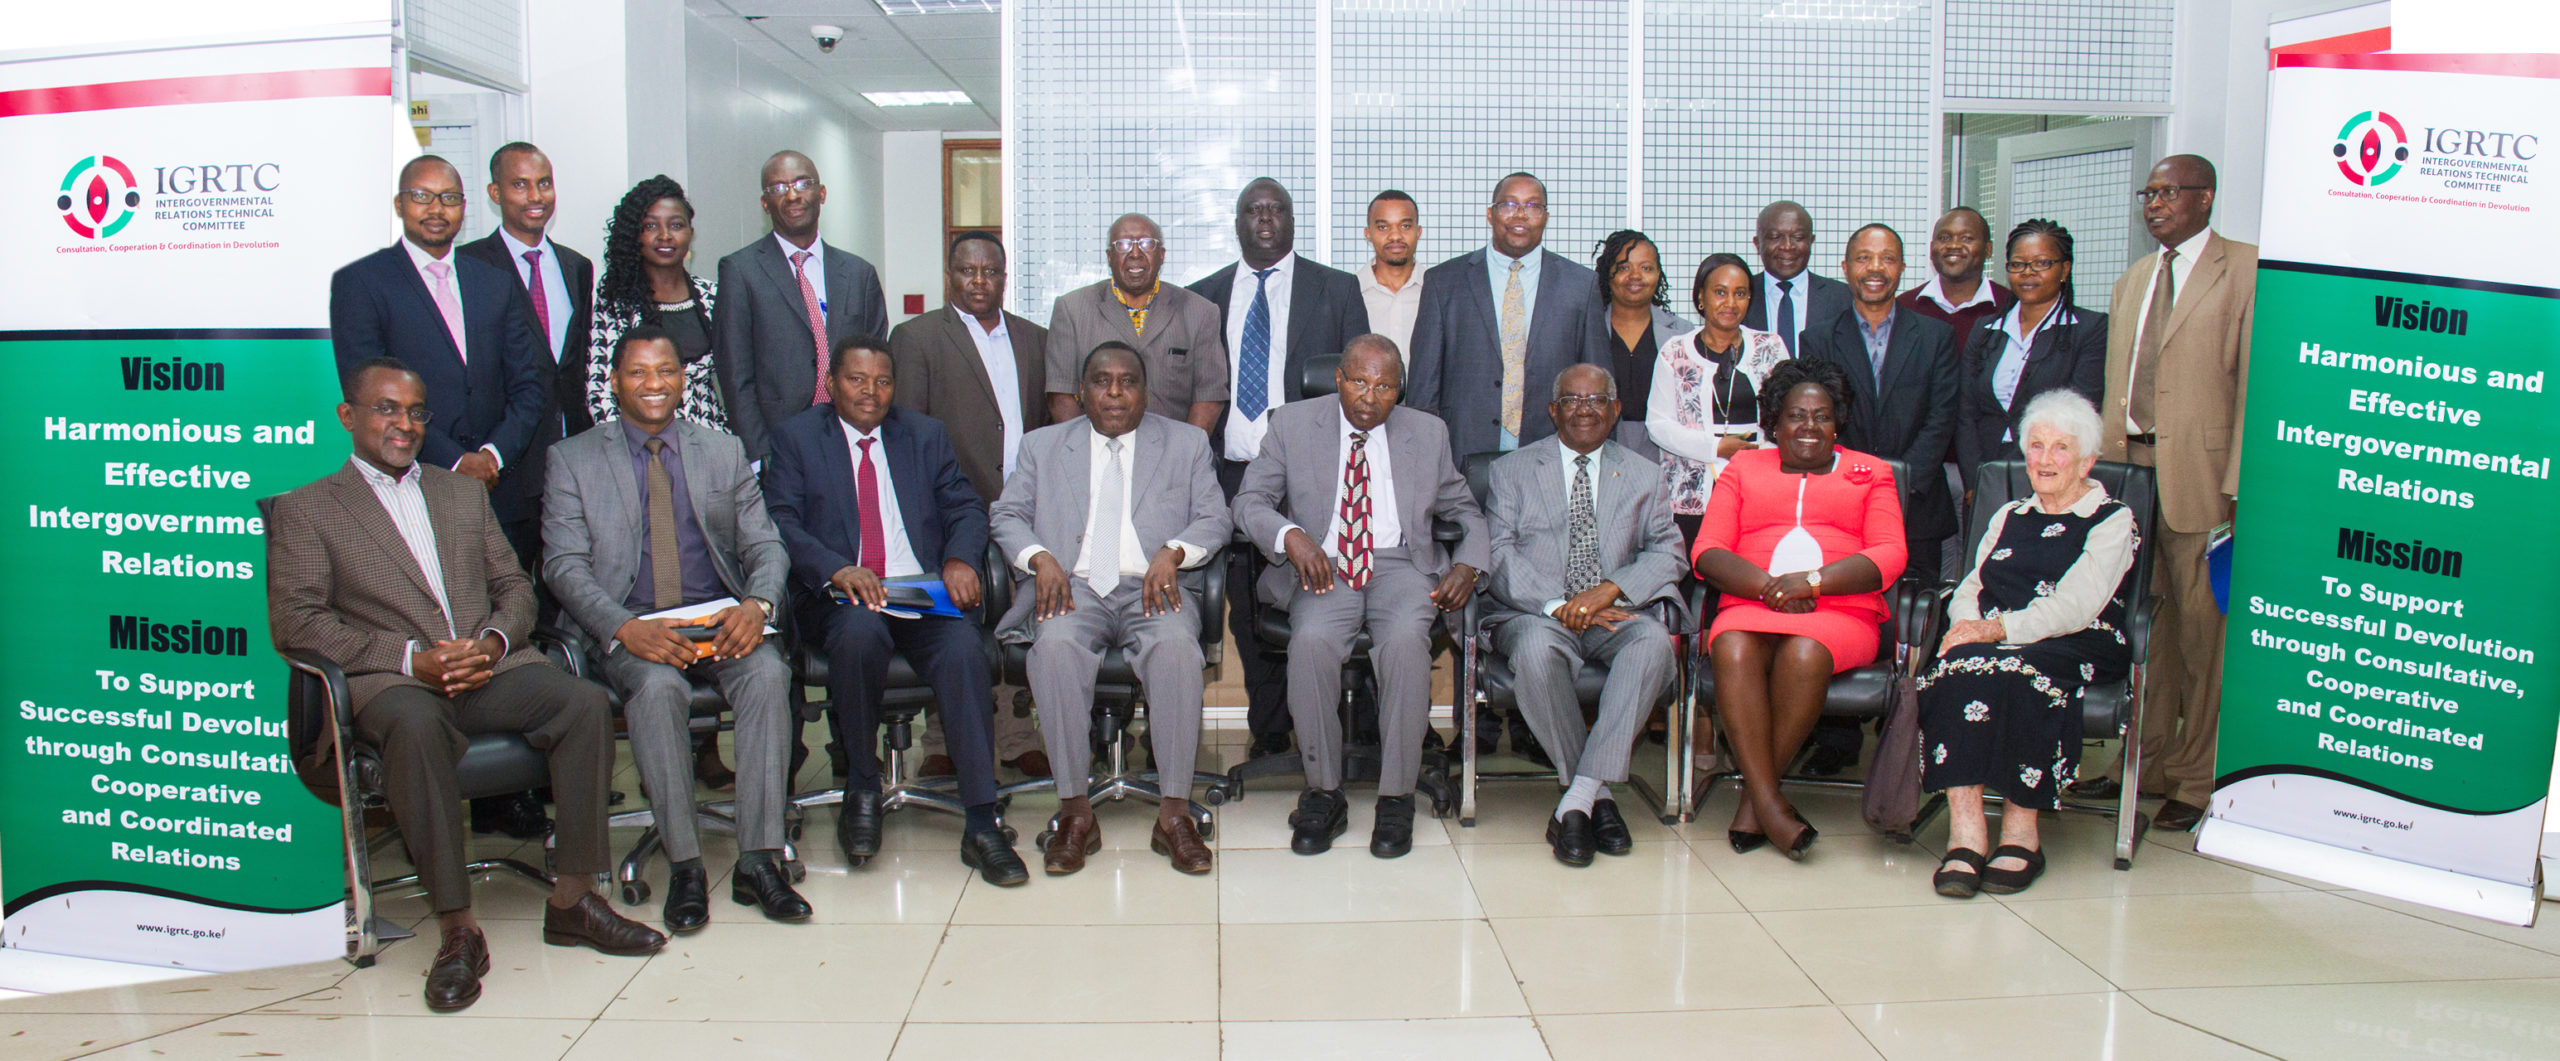 Consultative meeting on unbundling and transfer of museums functions held between IGRTC members and the Board of National Museums of Kenya on 2nd March 2020.